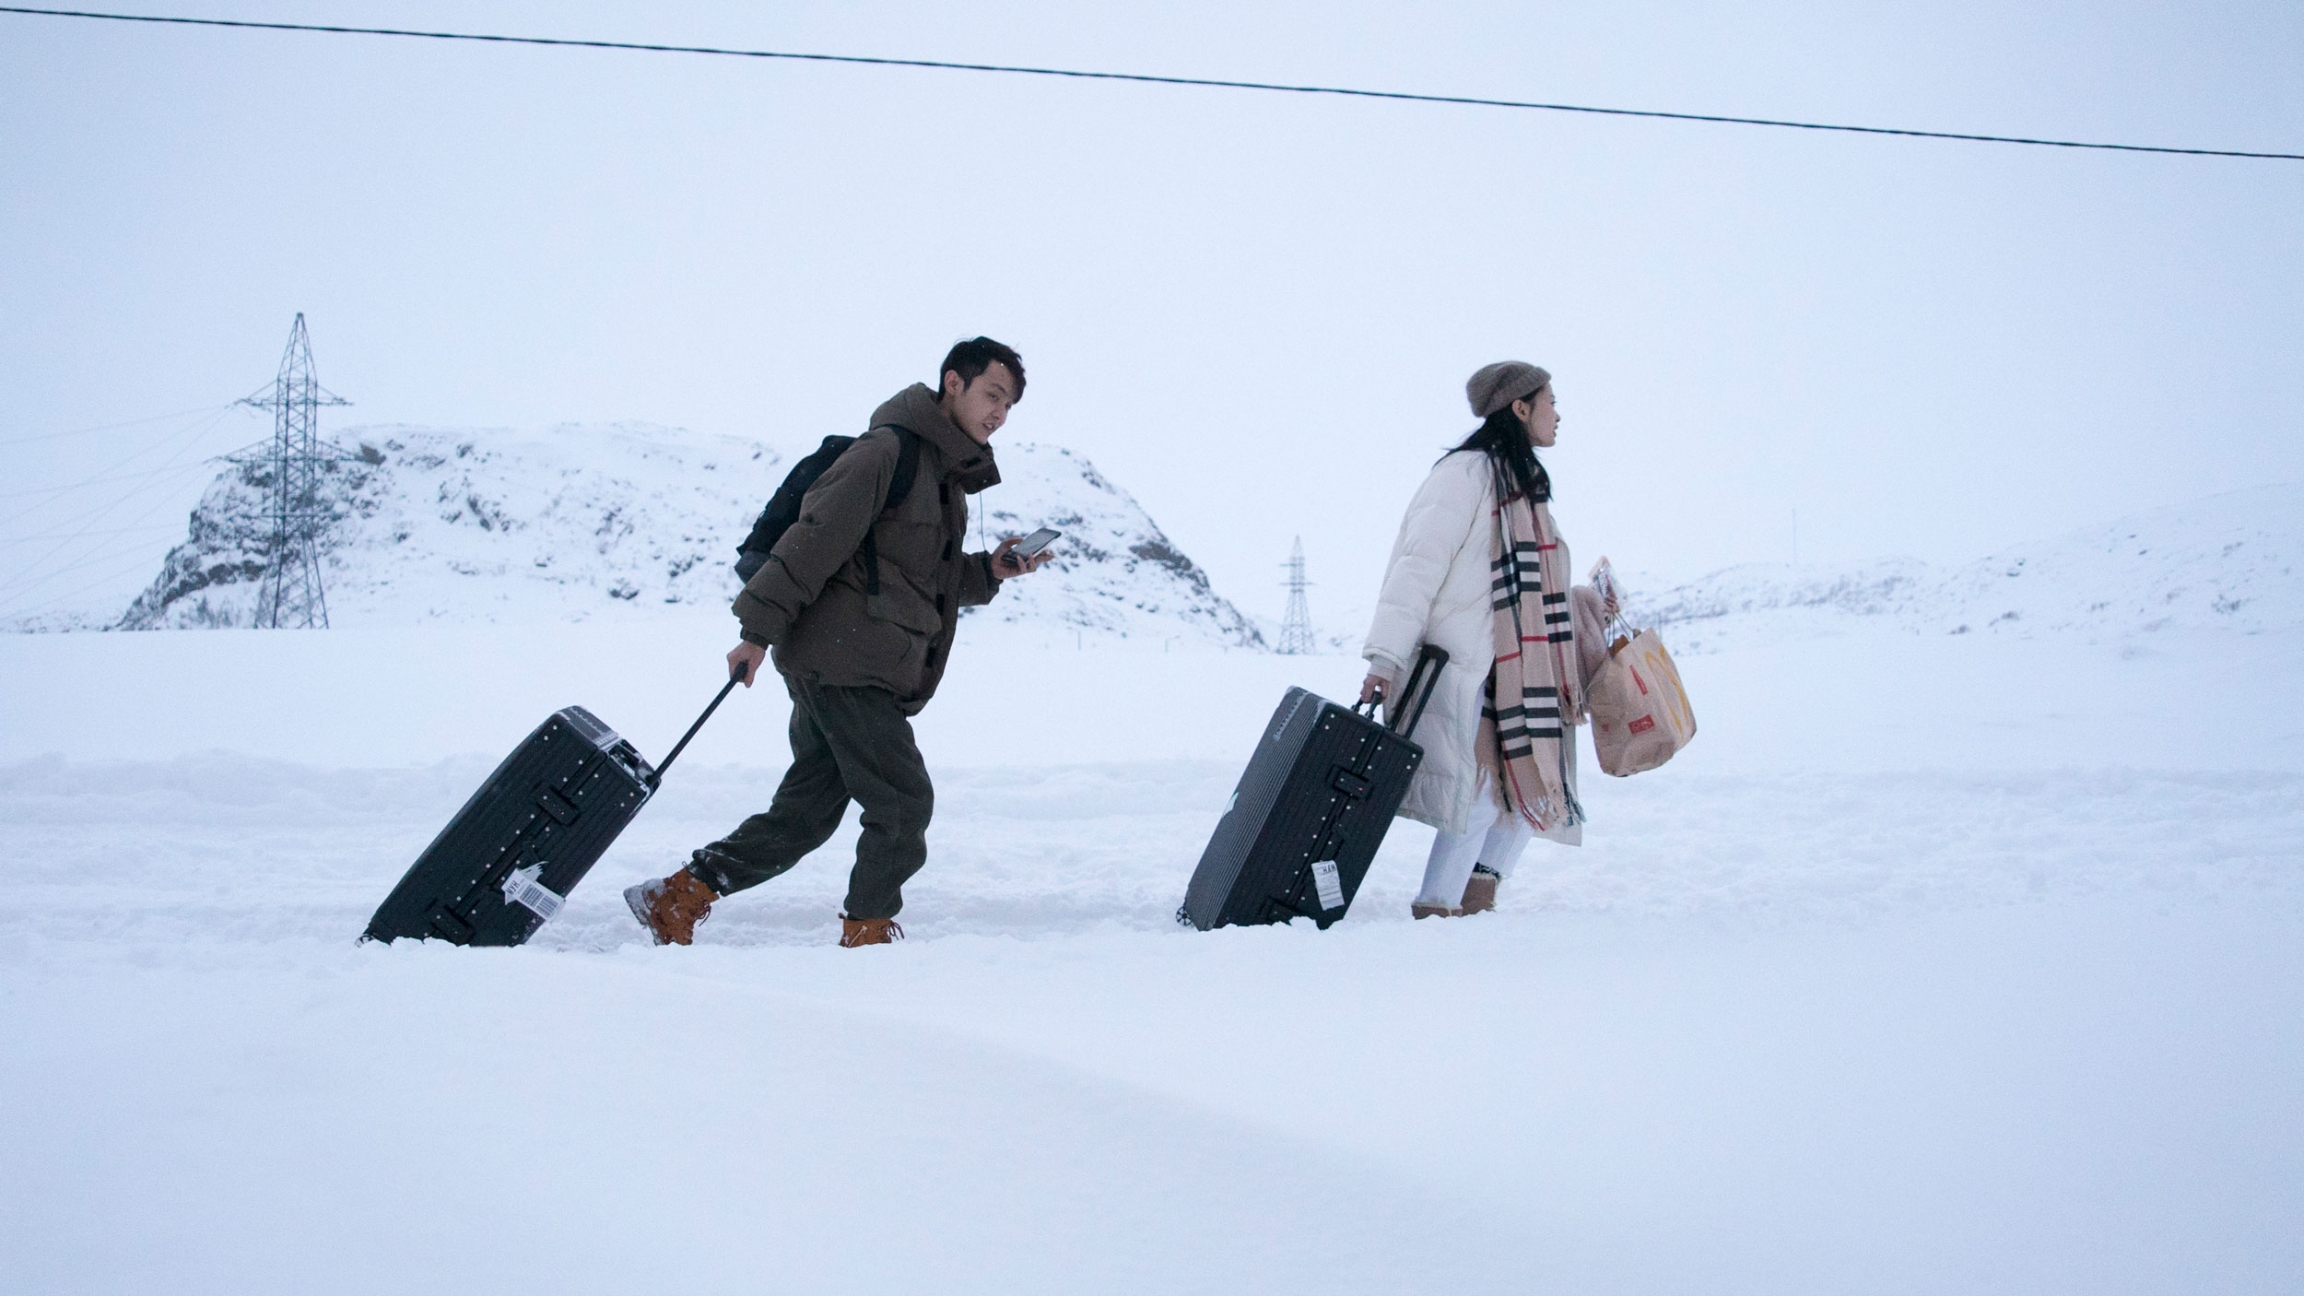 Two people are shown pulling their suitcases amongst a snowy path.